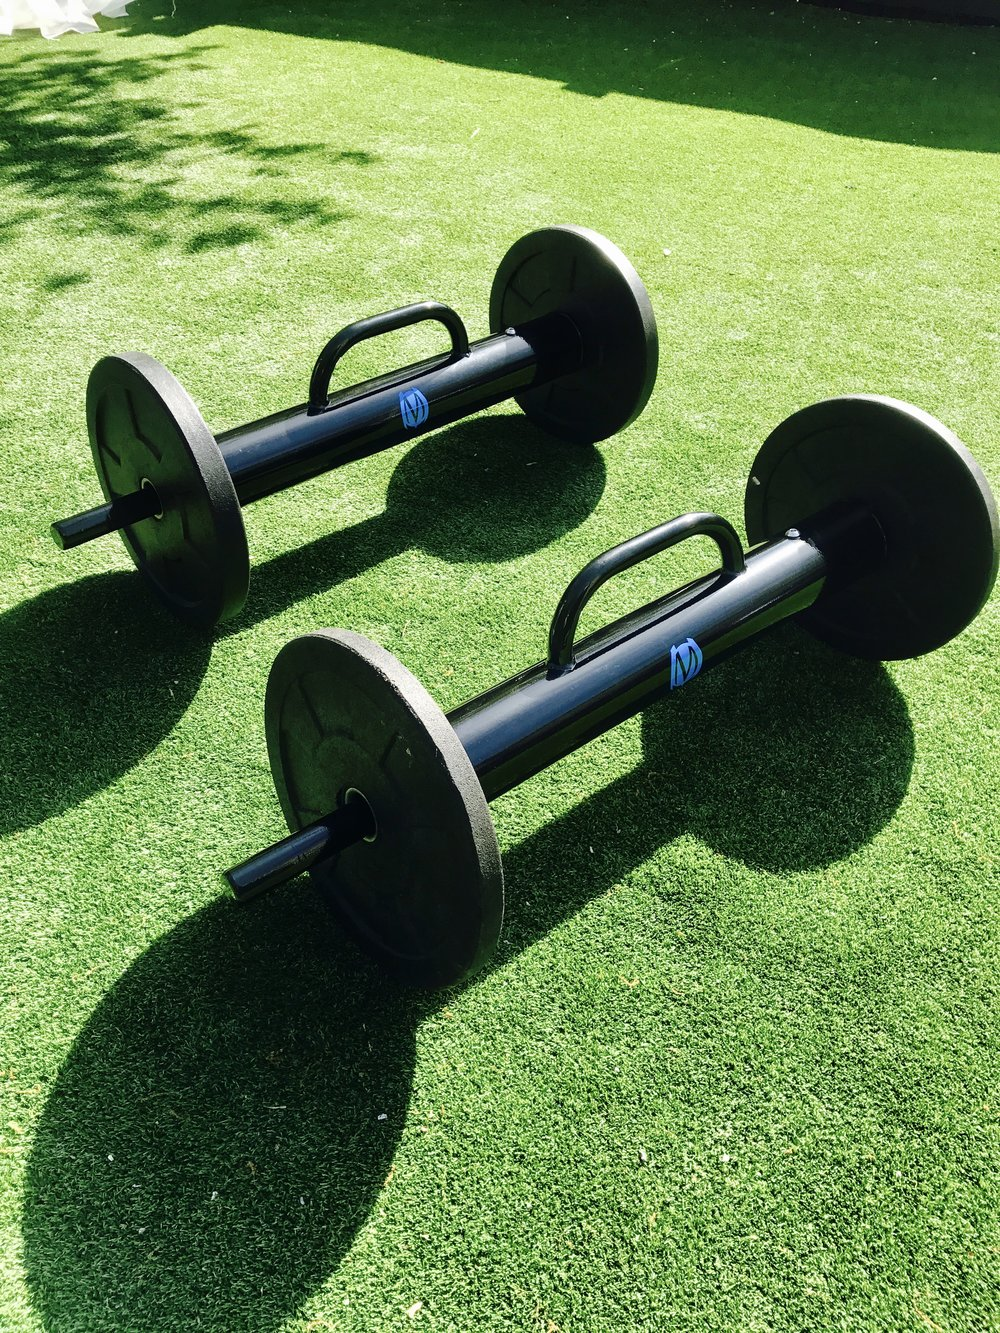 Outdoor functional fitness equipment